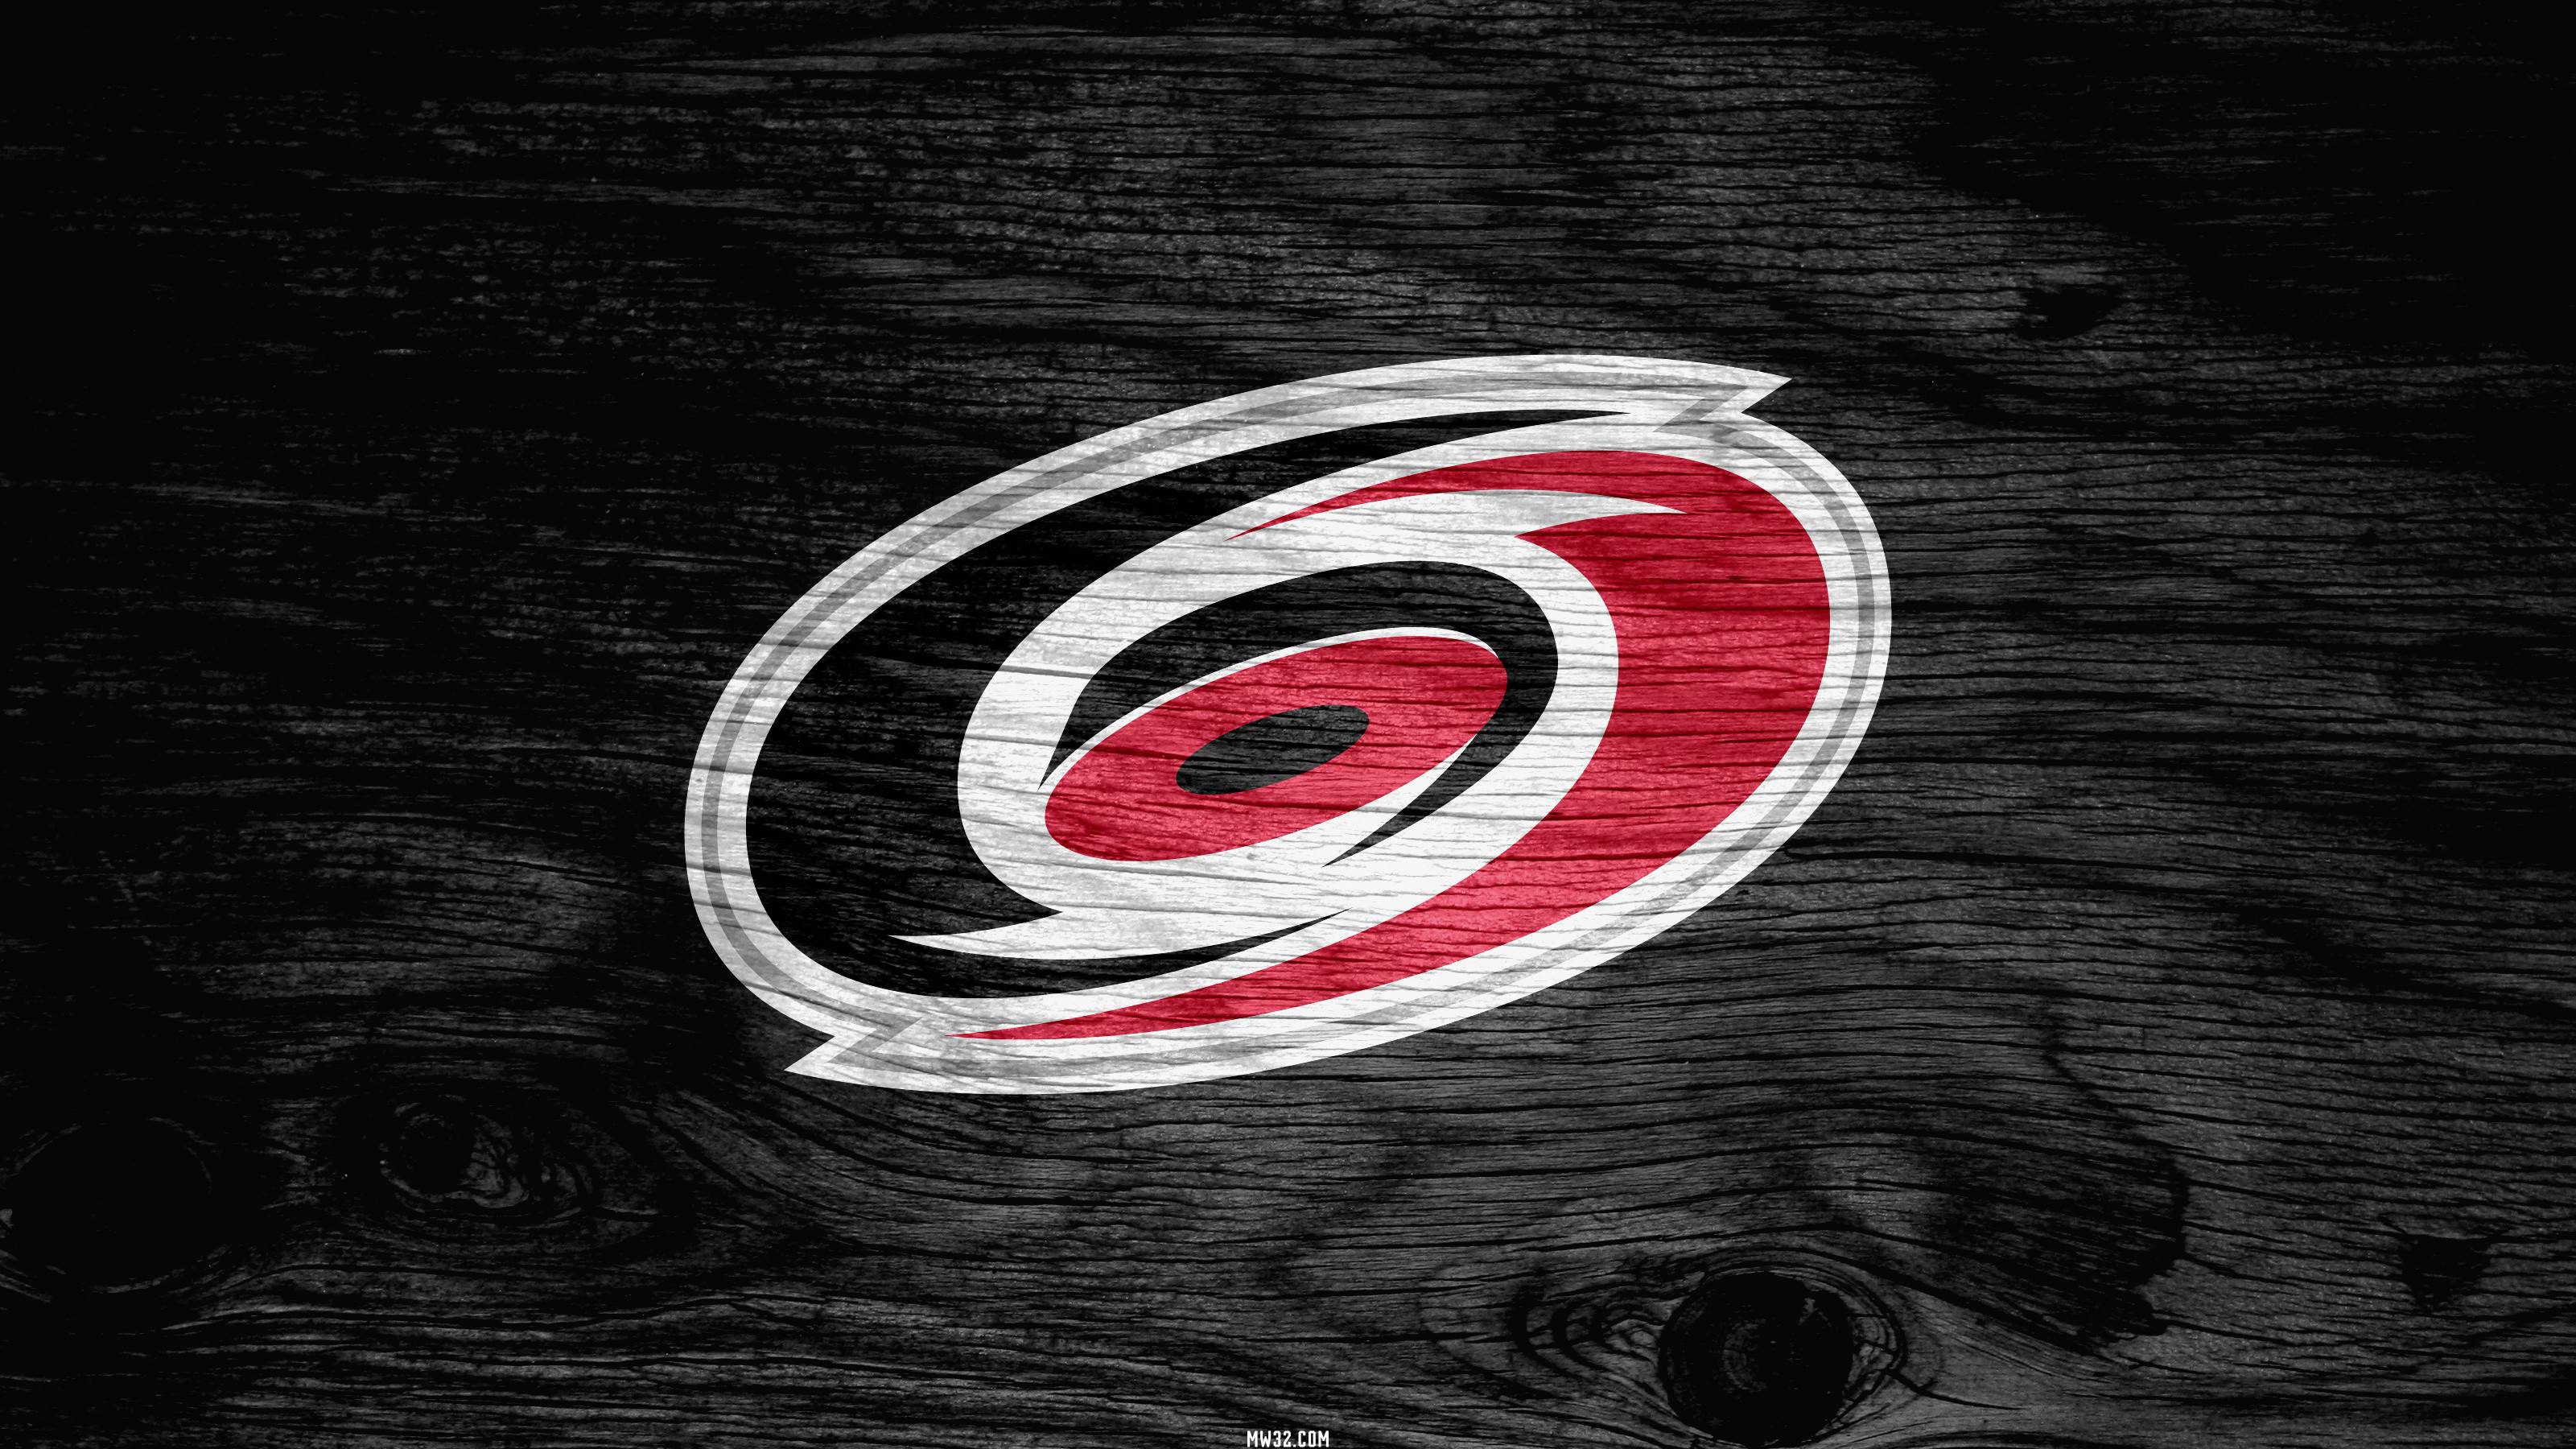 Seahawks Hd Wallpaper 6 Carolina Hurricanes Hd Wallpapers Background Images